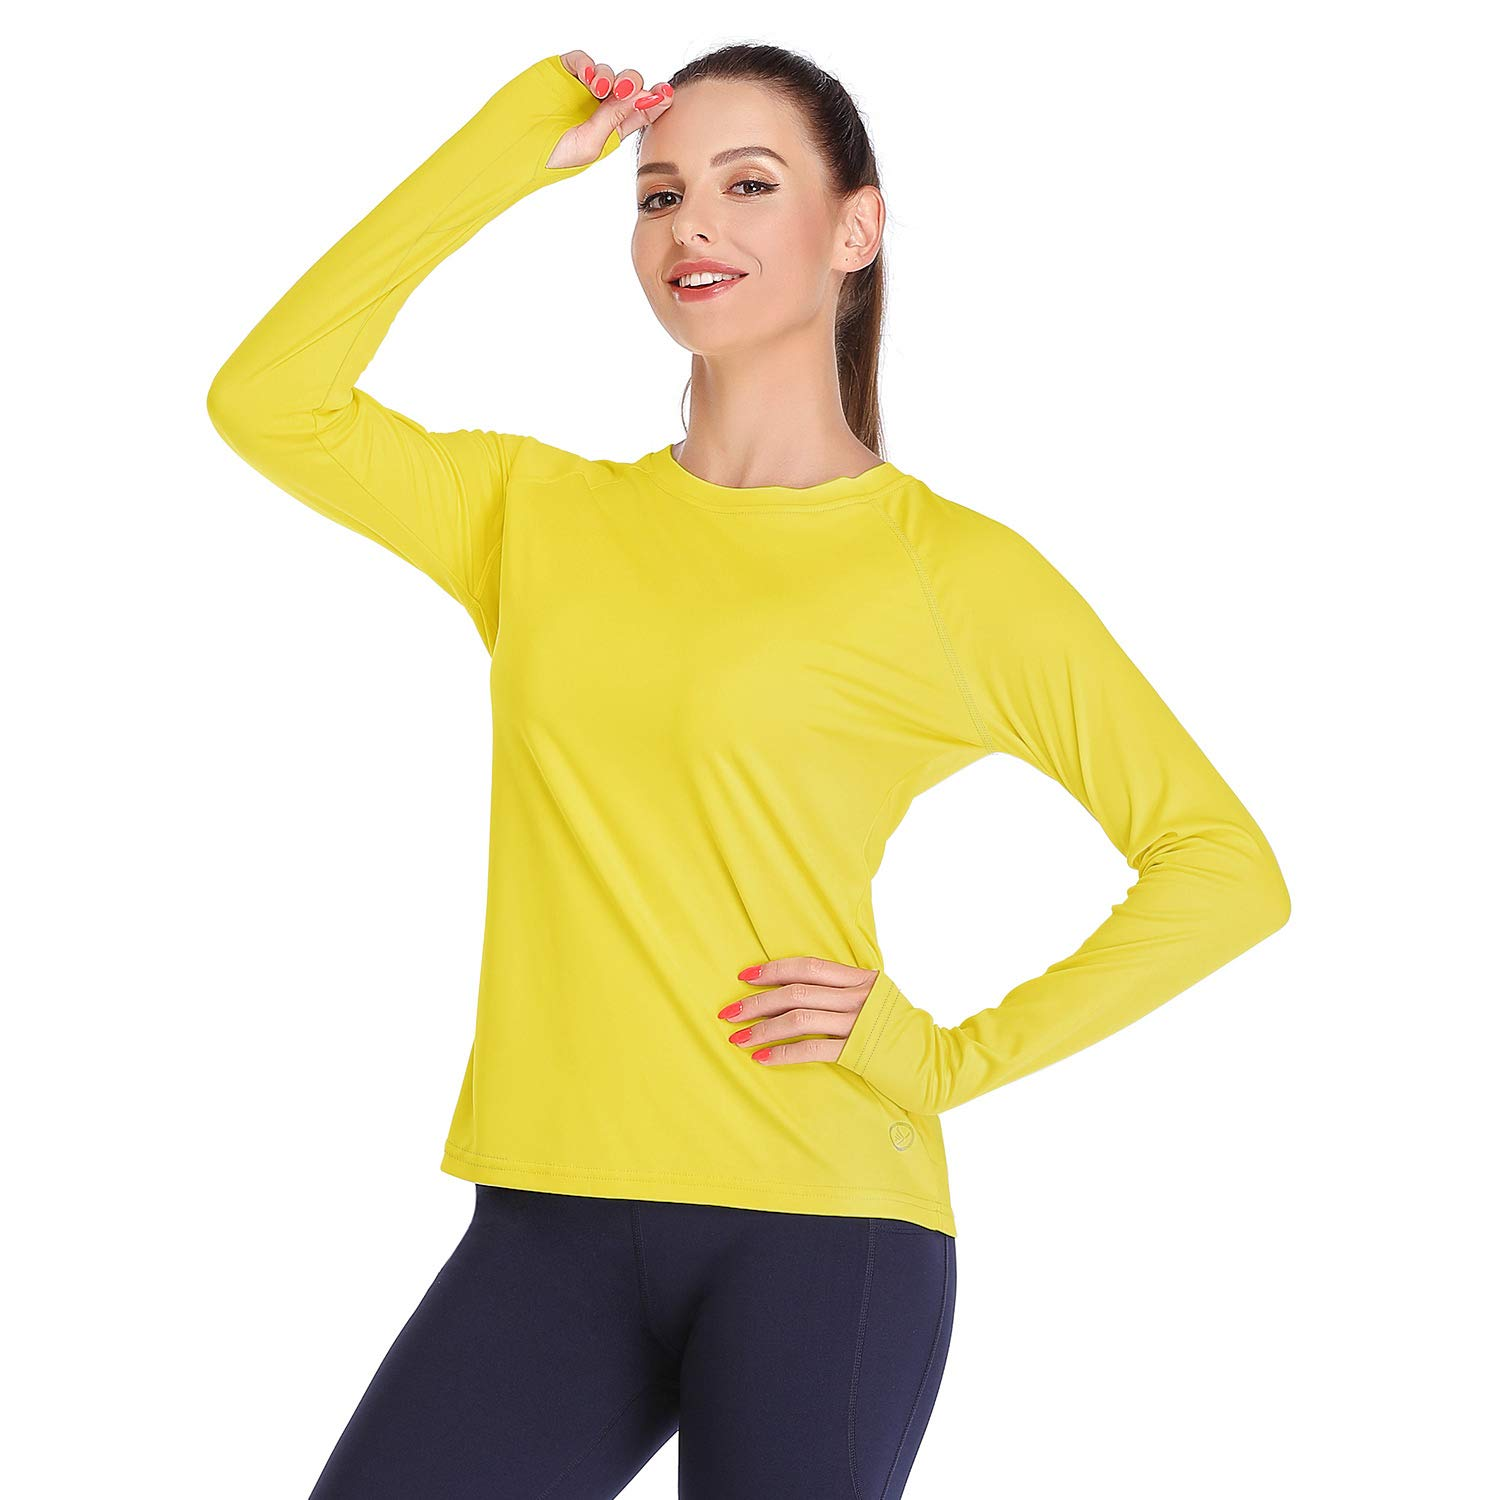 DAYOUNG Womens UPF 50+ UV Sun Protection Running Hiking Outdoors Performance Long Sleeve T-Shirt Athletic Top with Thumb Hole YWT11-Yellow-S by DAYOUNG